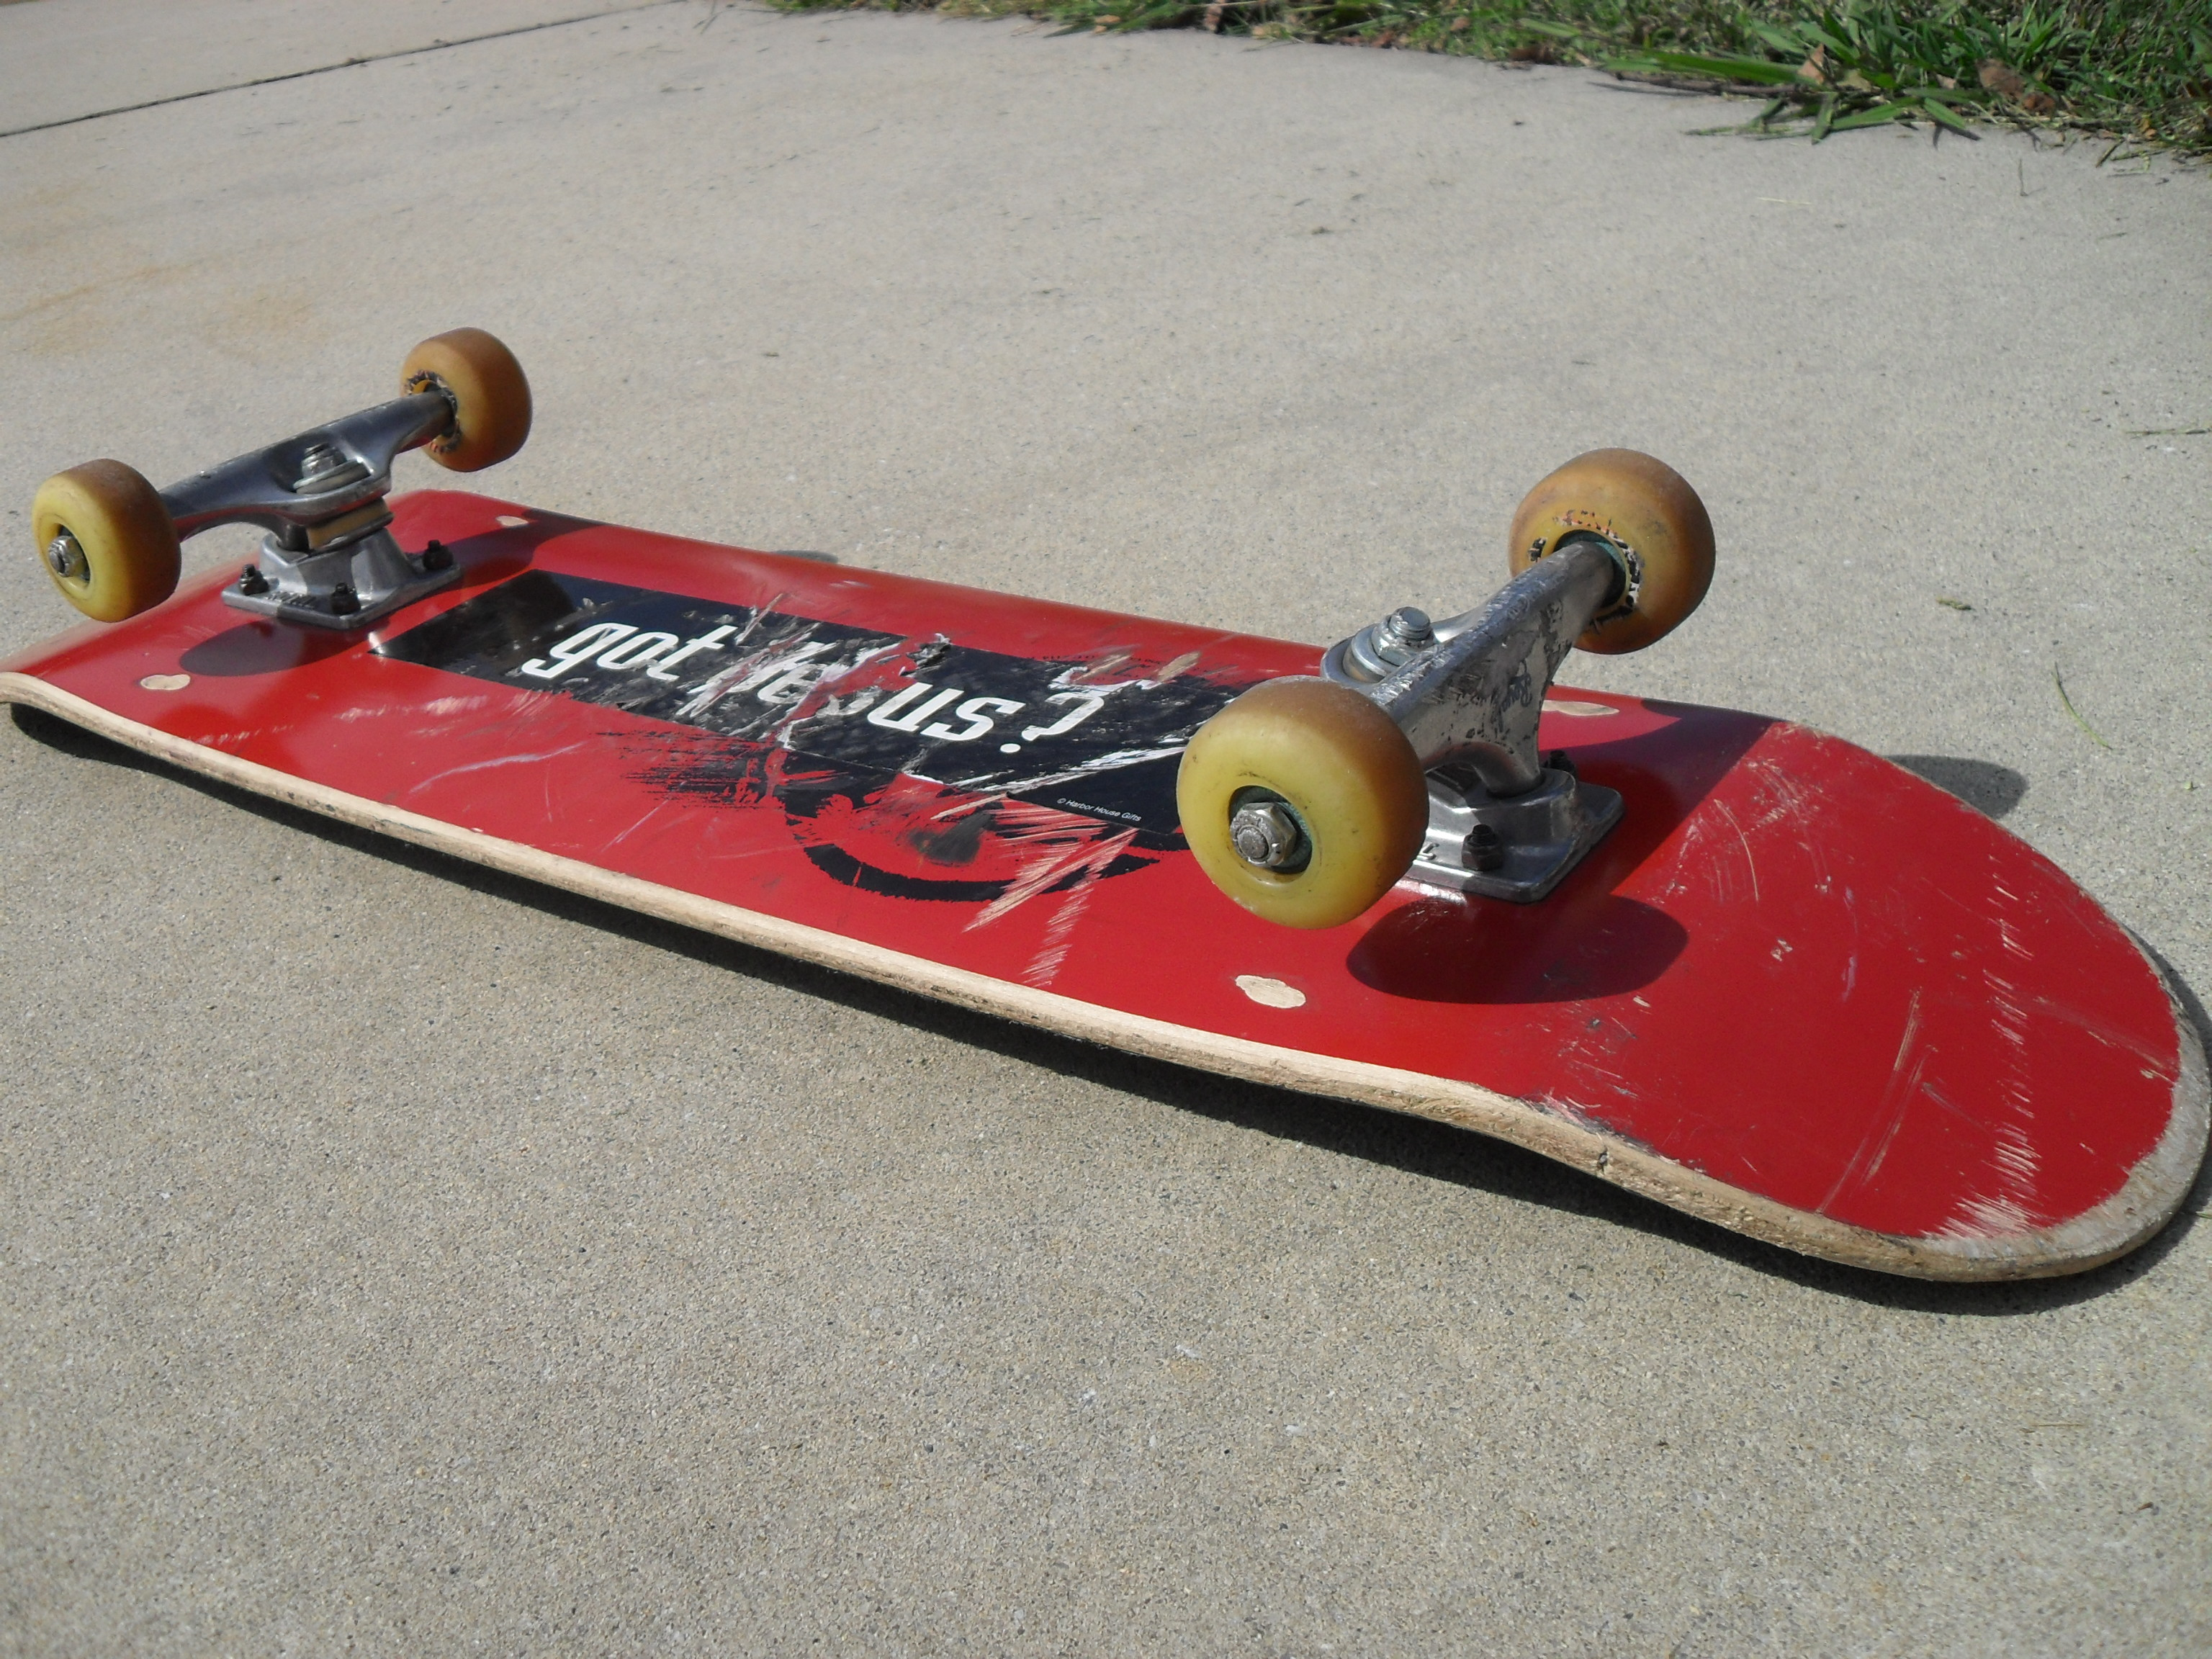 a9b1f025b File Skateboard on side.JPG - Wikimedia Commons